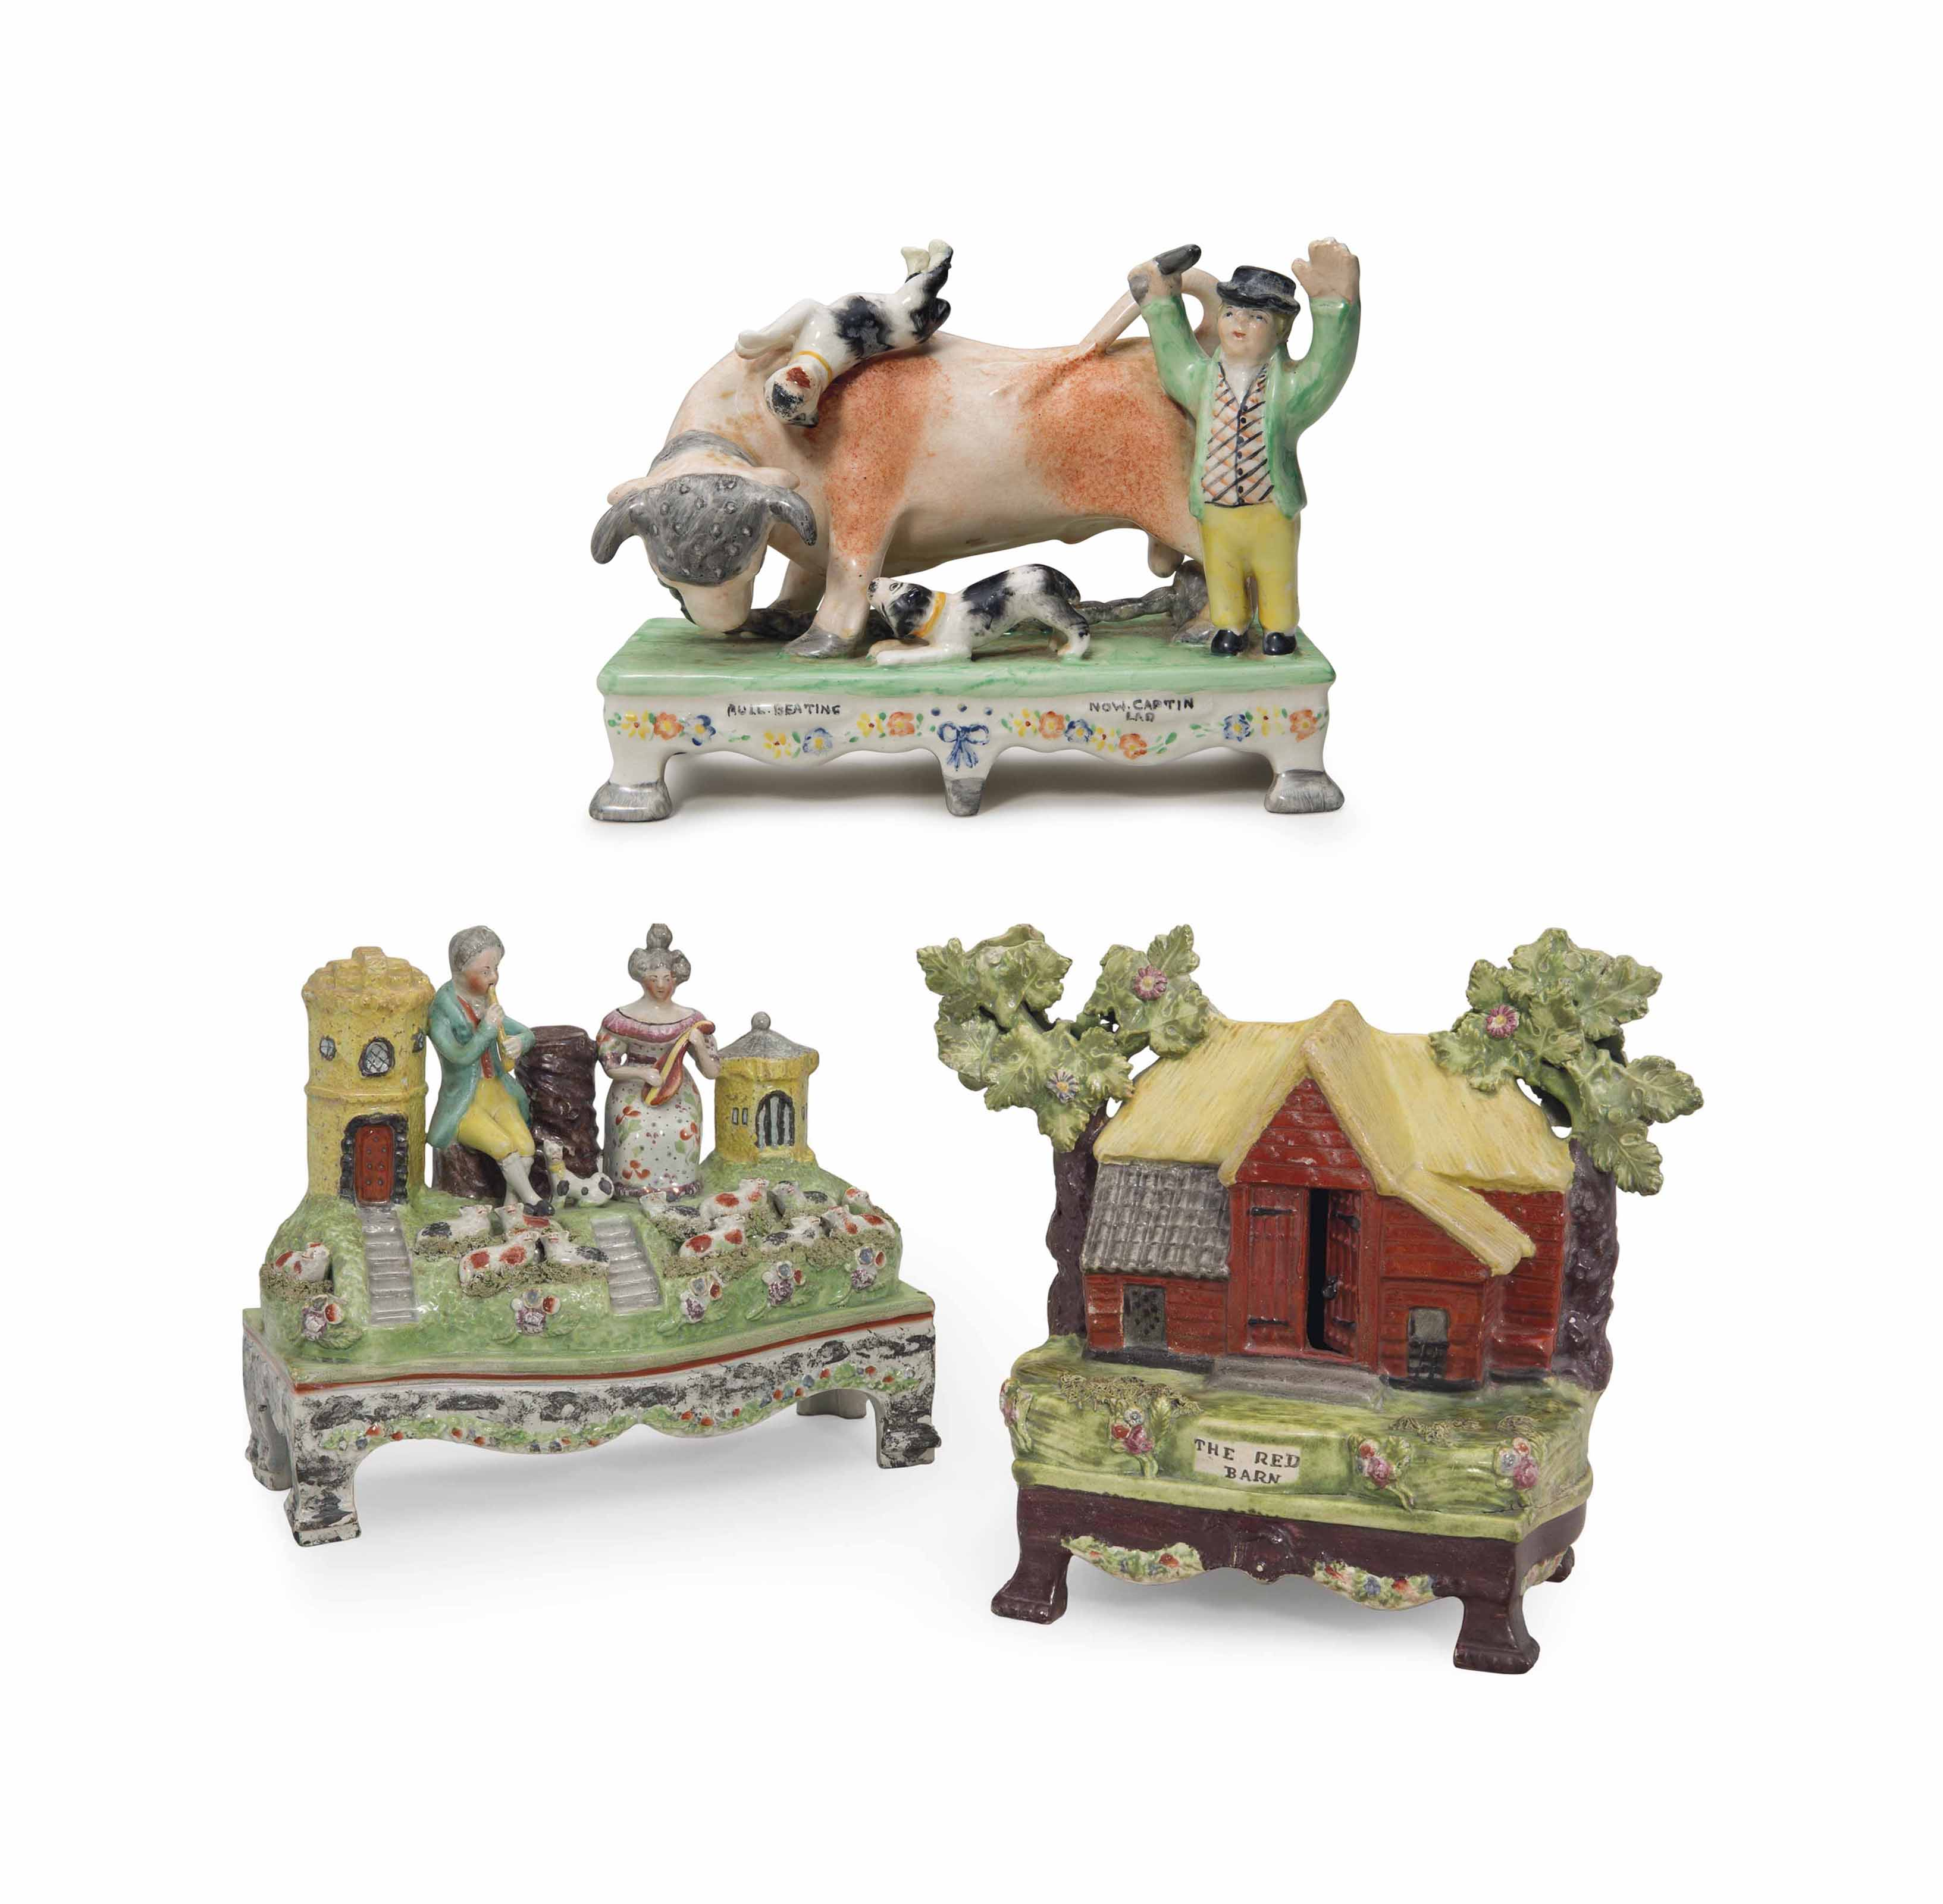 A STAFFORDSHIRE PEARLWARE GROUP OF MUSICIANS AND A MODEL OF THE RED BARN